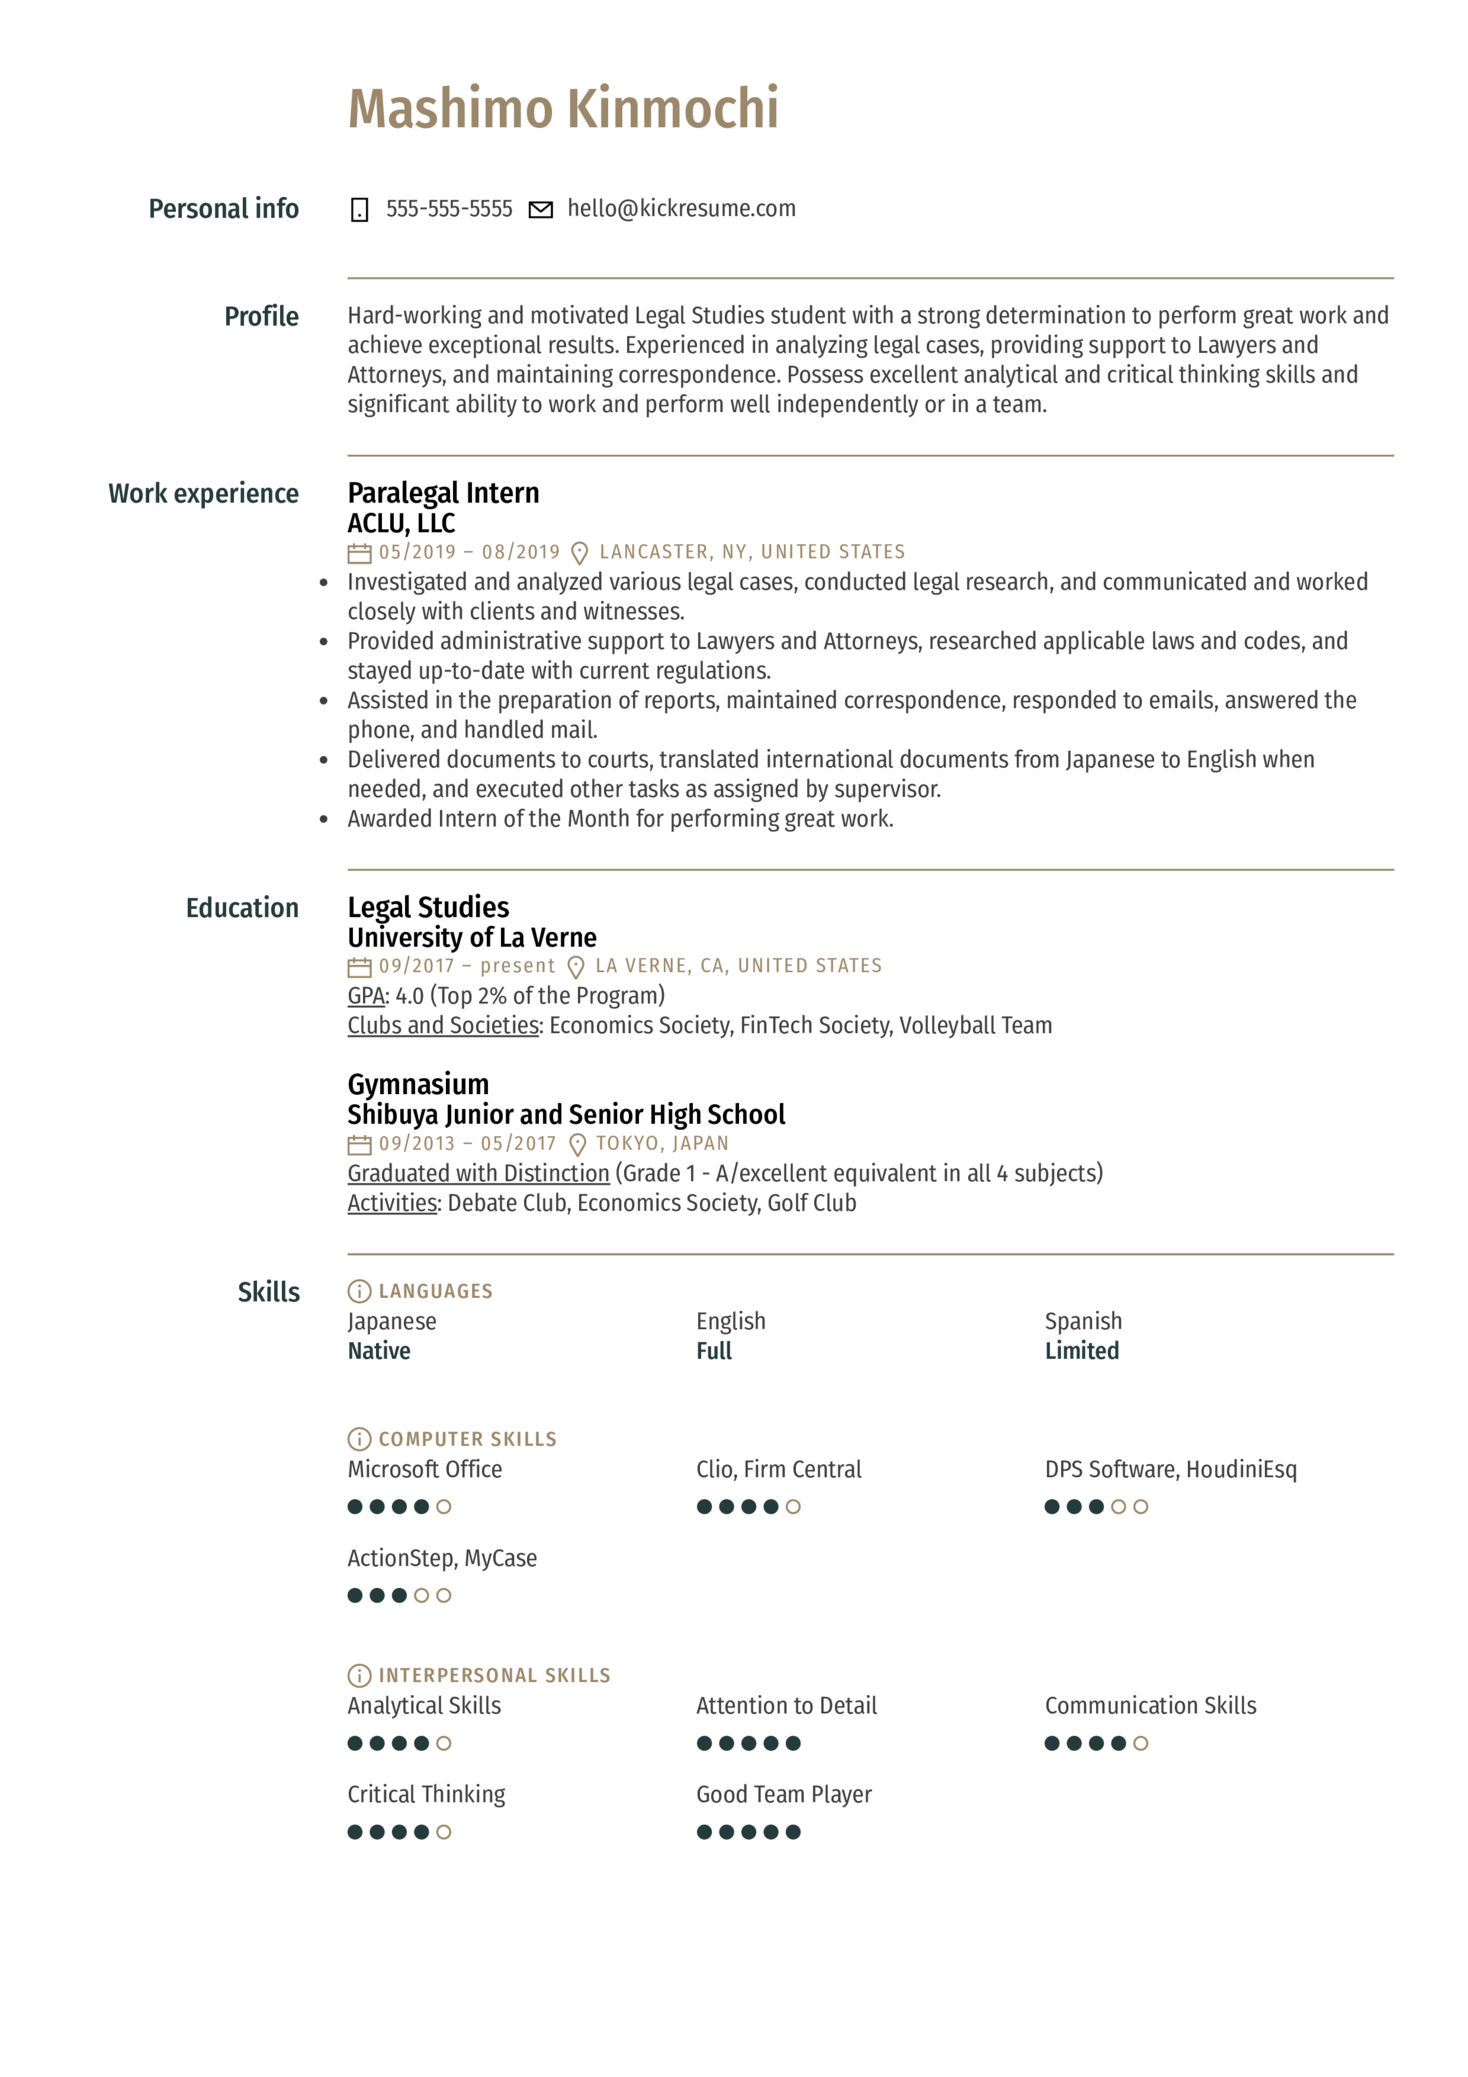 Paralegal Intern Resume Example (Teil 1)